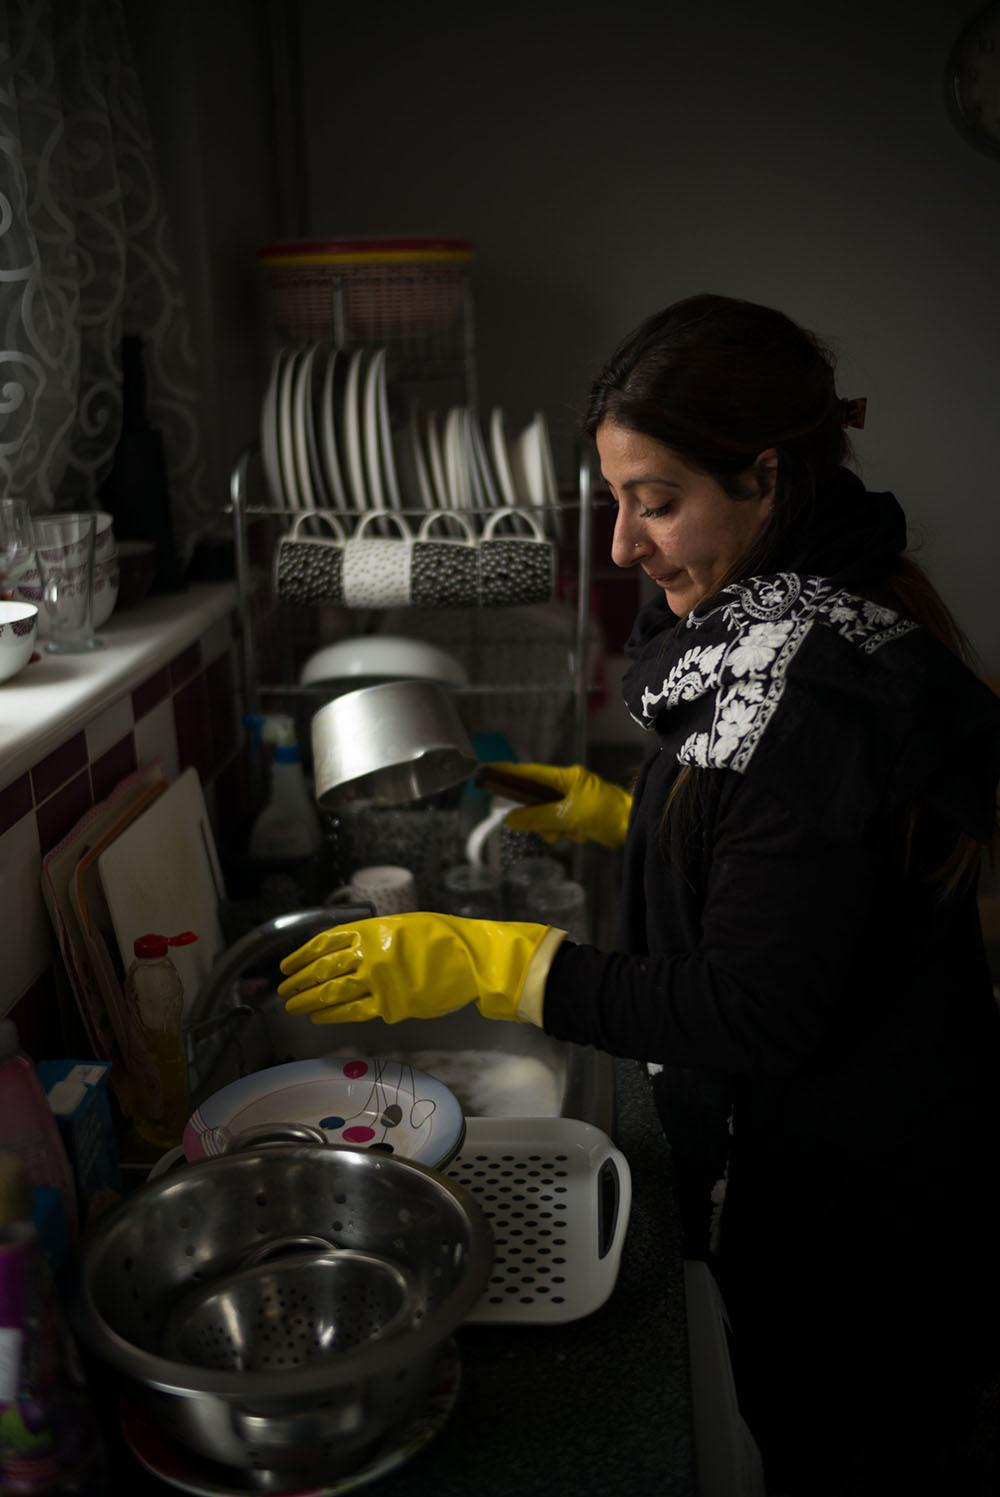 A lady wearing yellow washing up gloves washing pots and pans